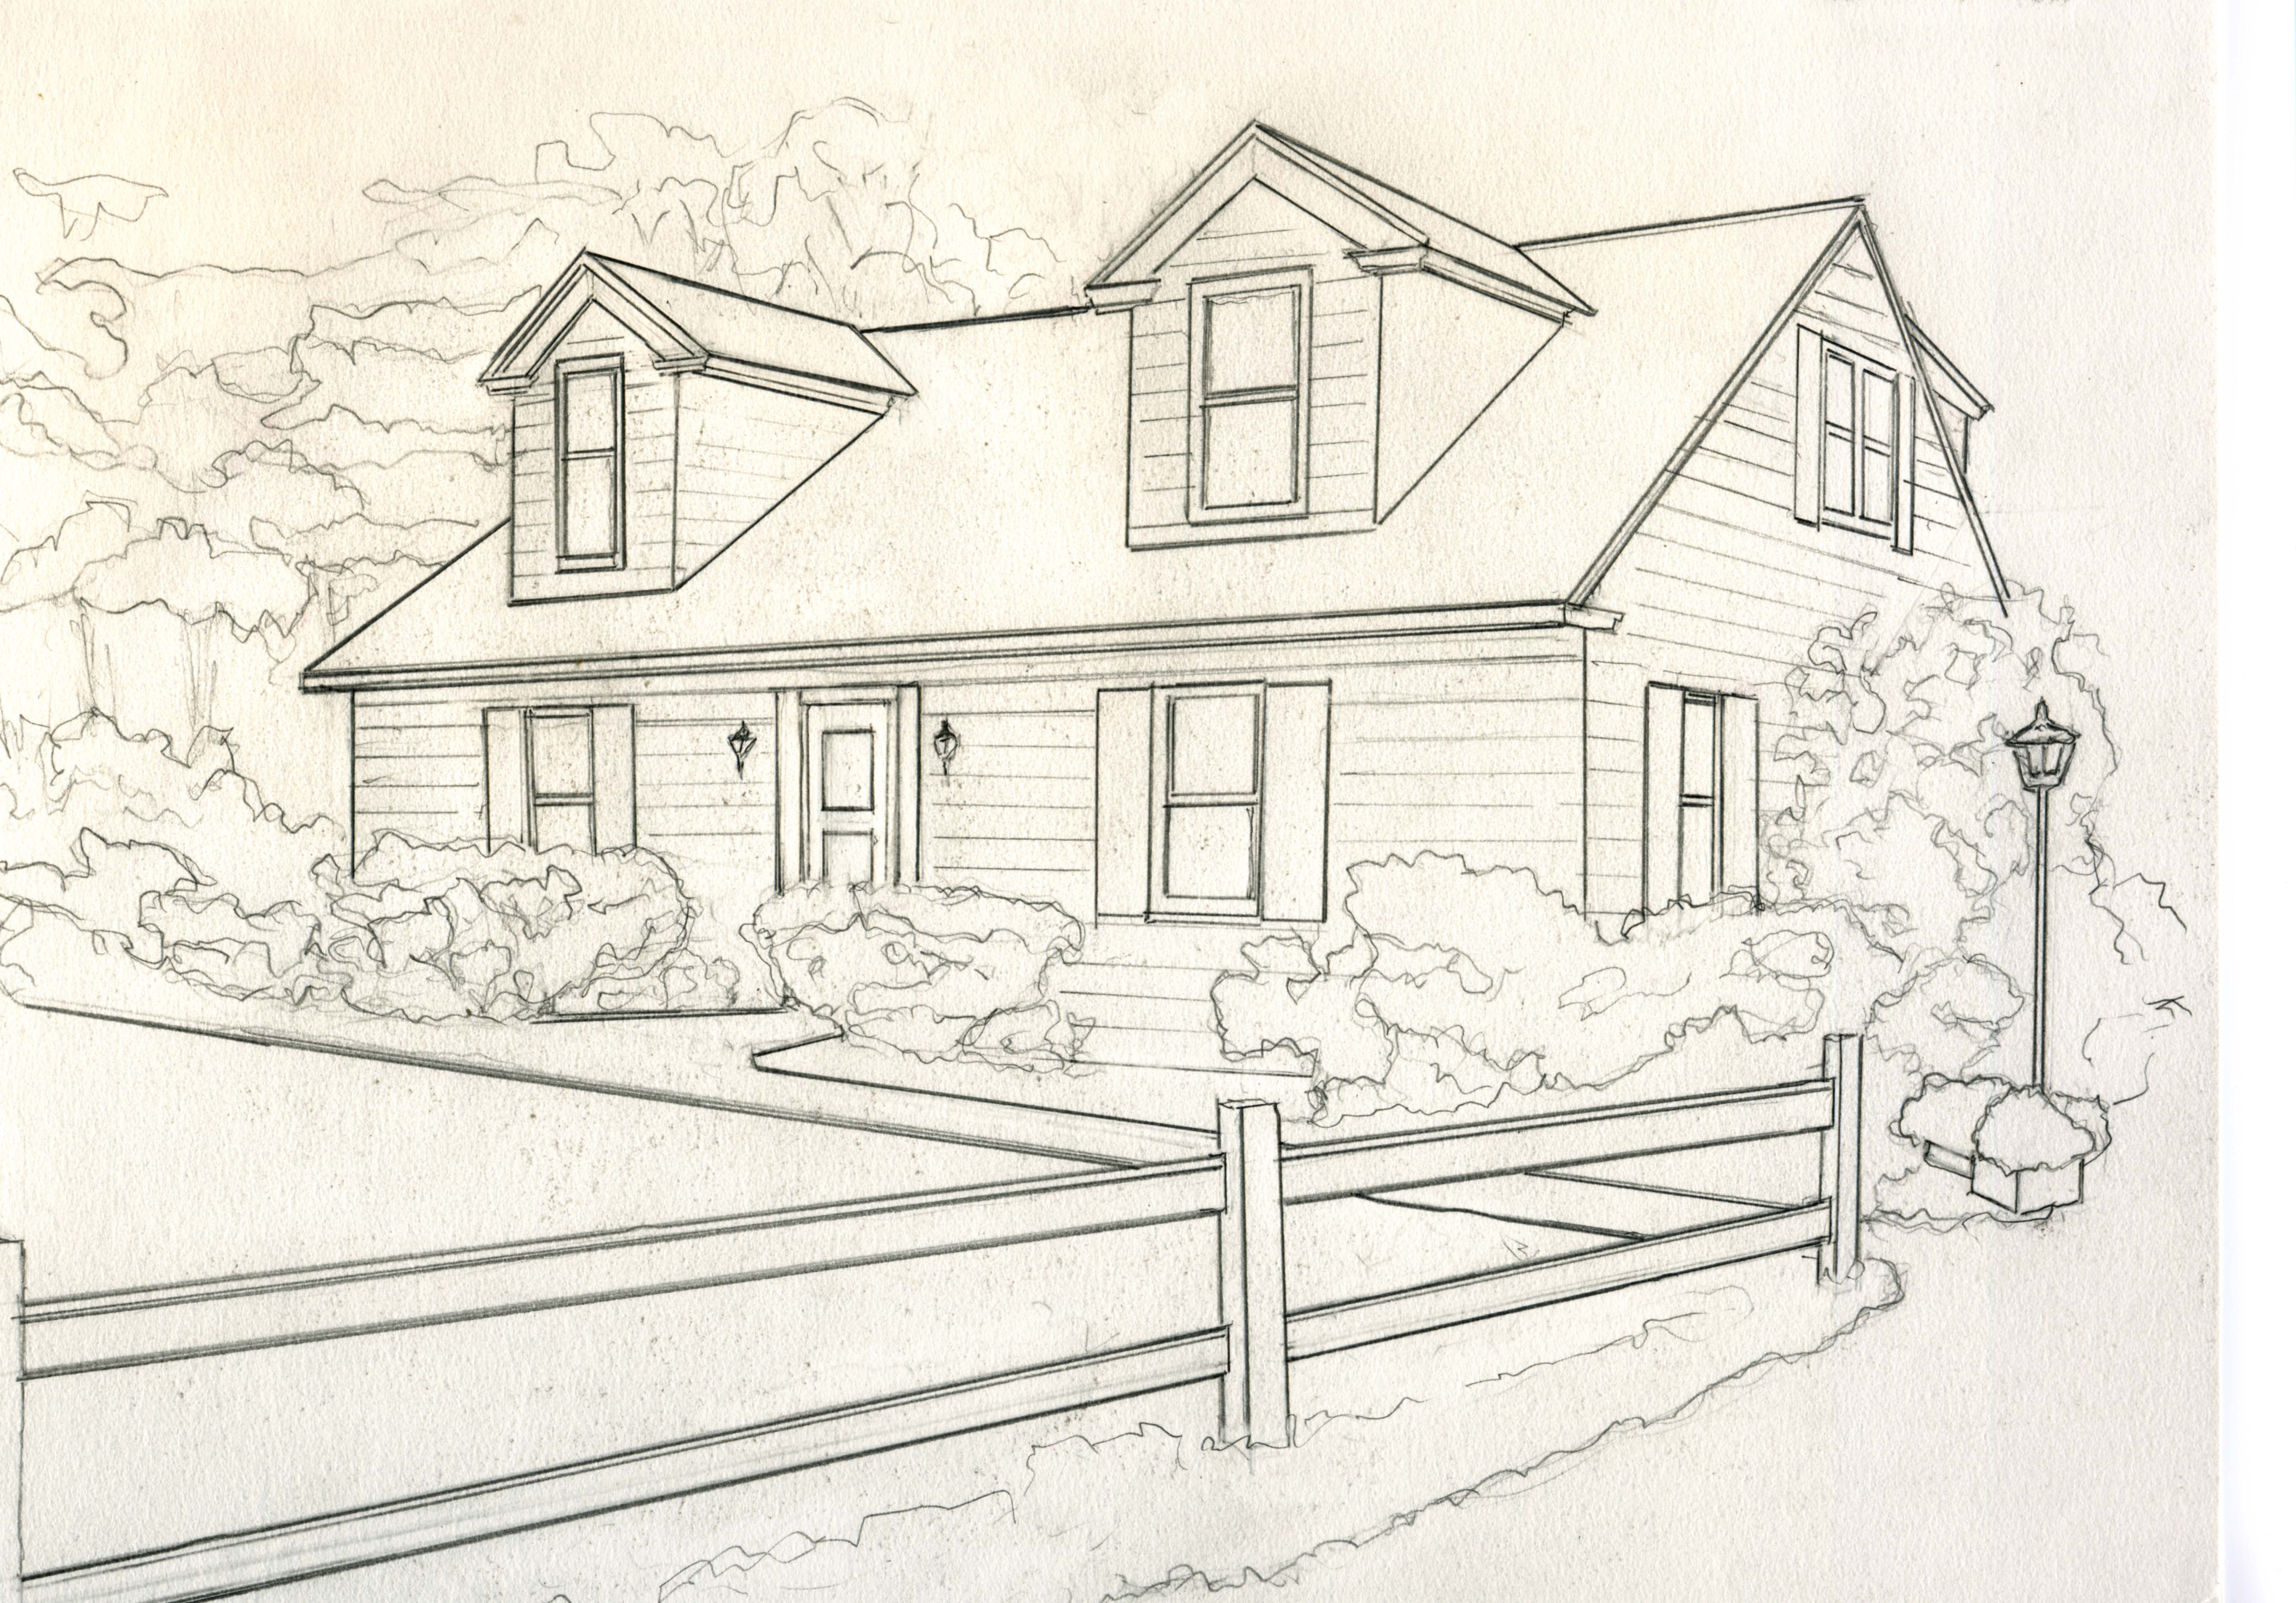 6460x4509 house for catelog drawing B greyscale small Kathleen Kelley